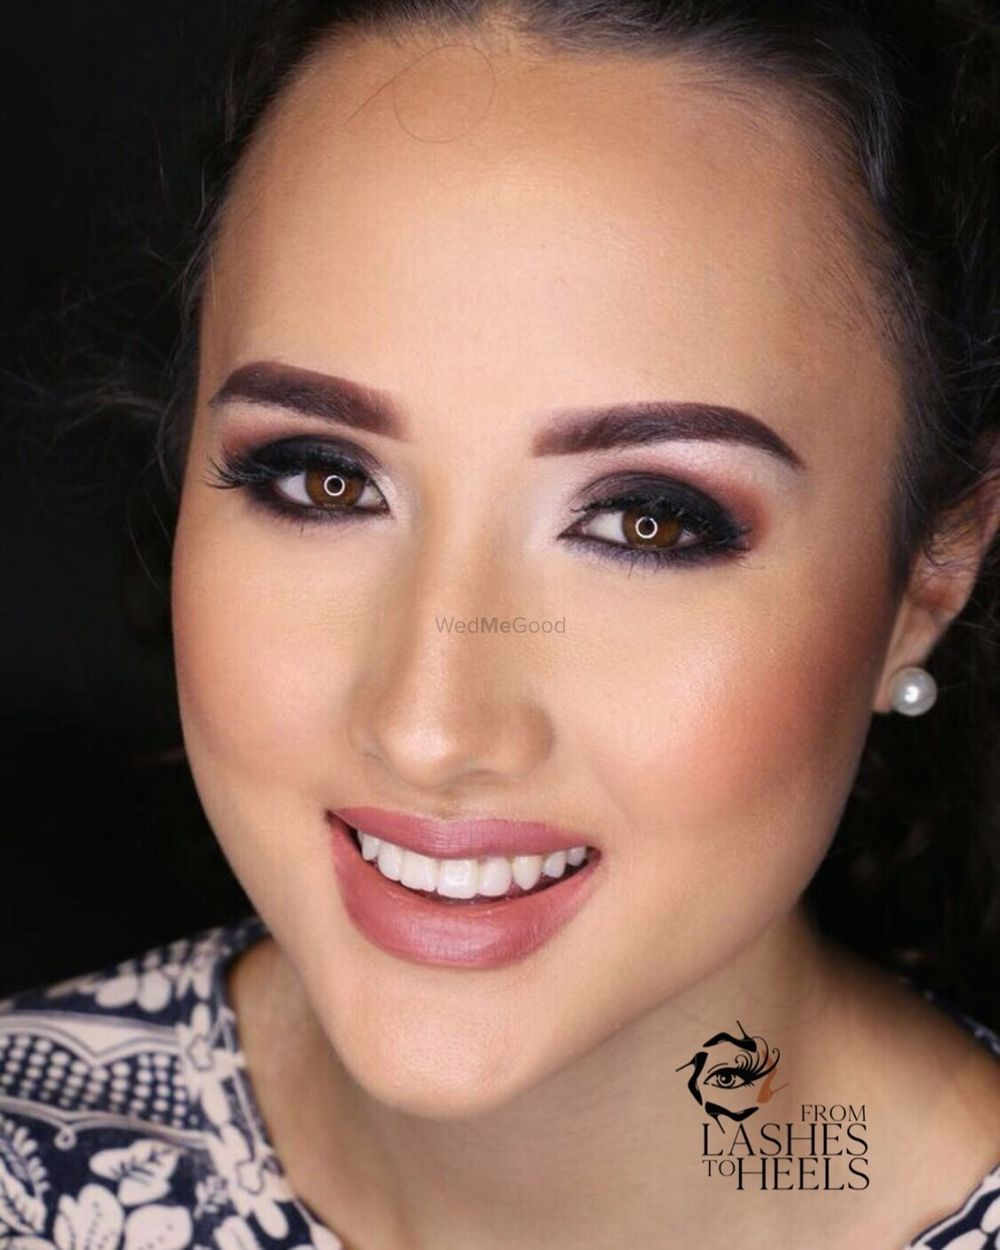 Photo By From Lashes To Heels - Makeup Artist